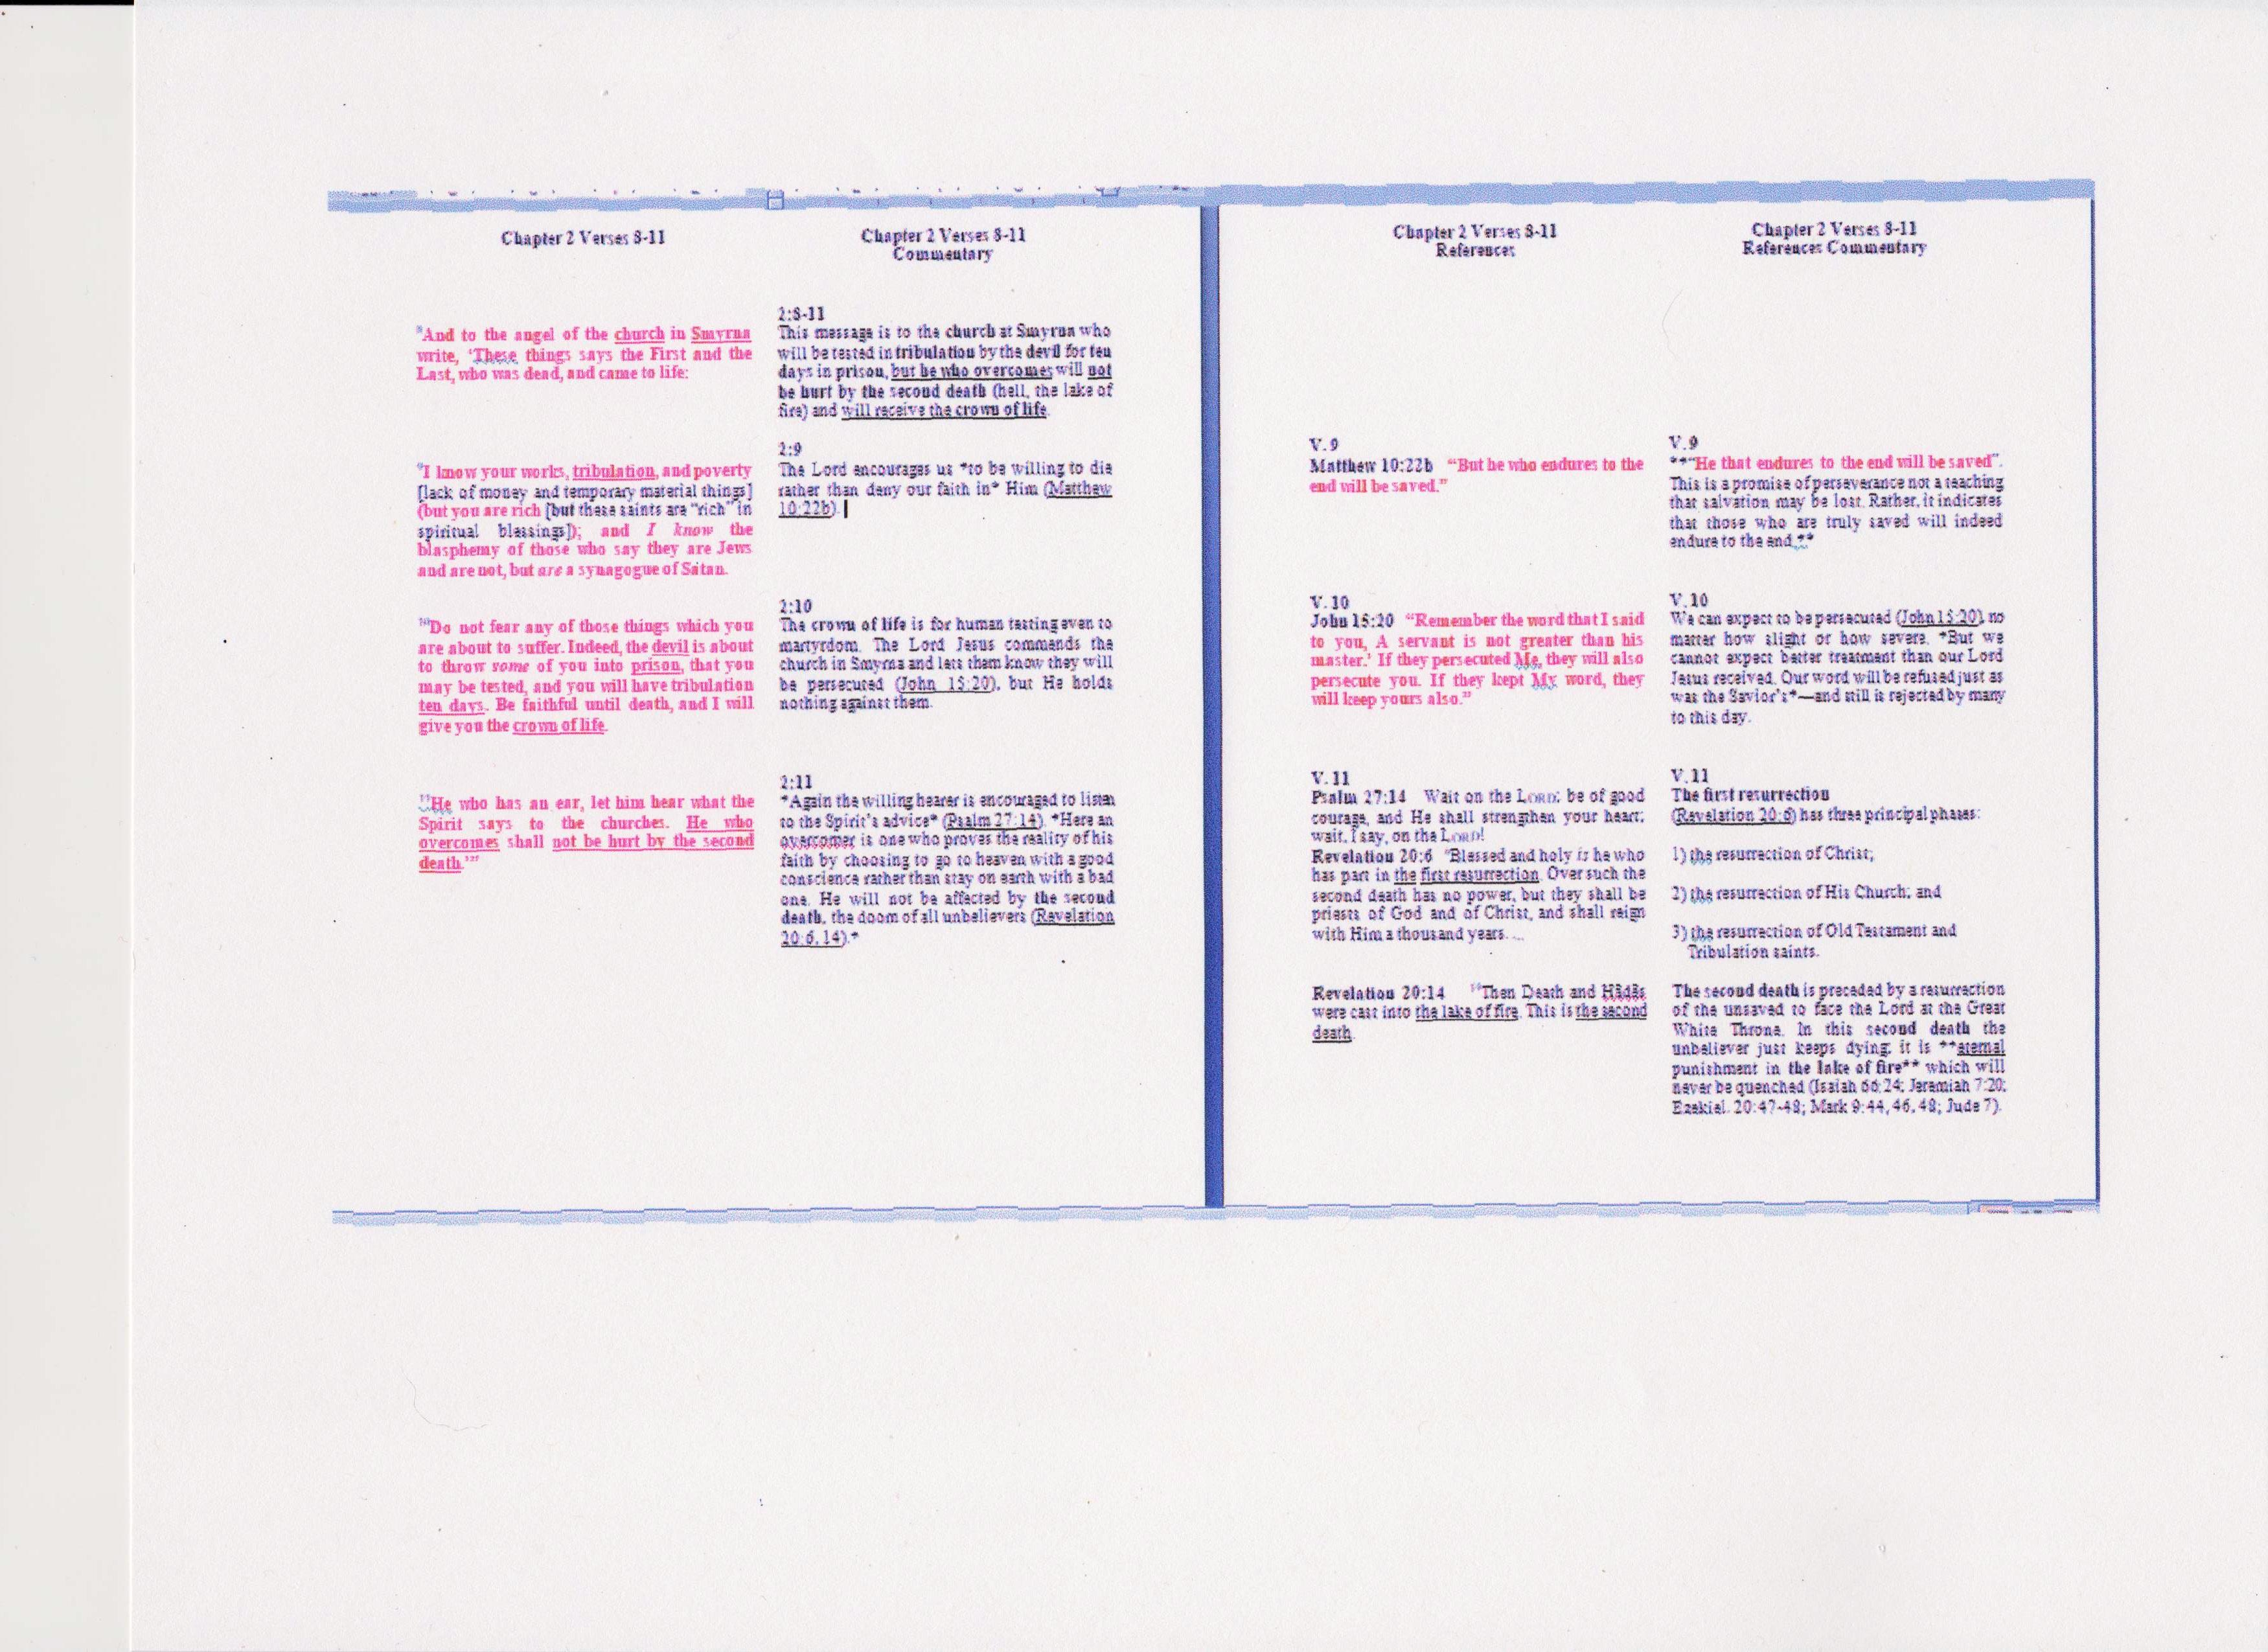 Photo of the layout over 2 side facing pages